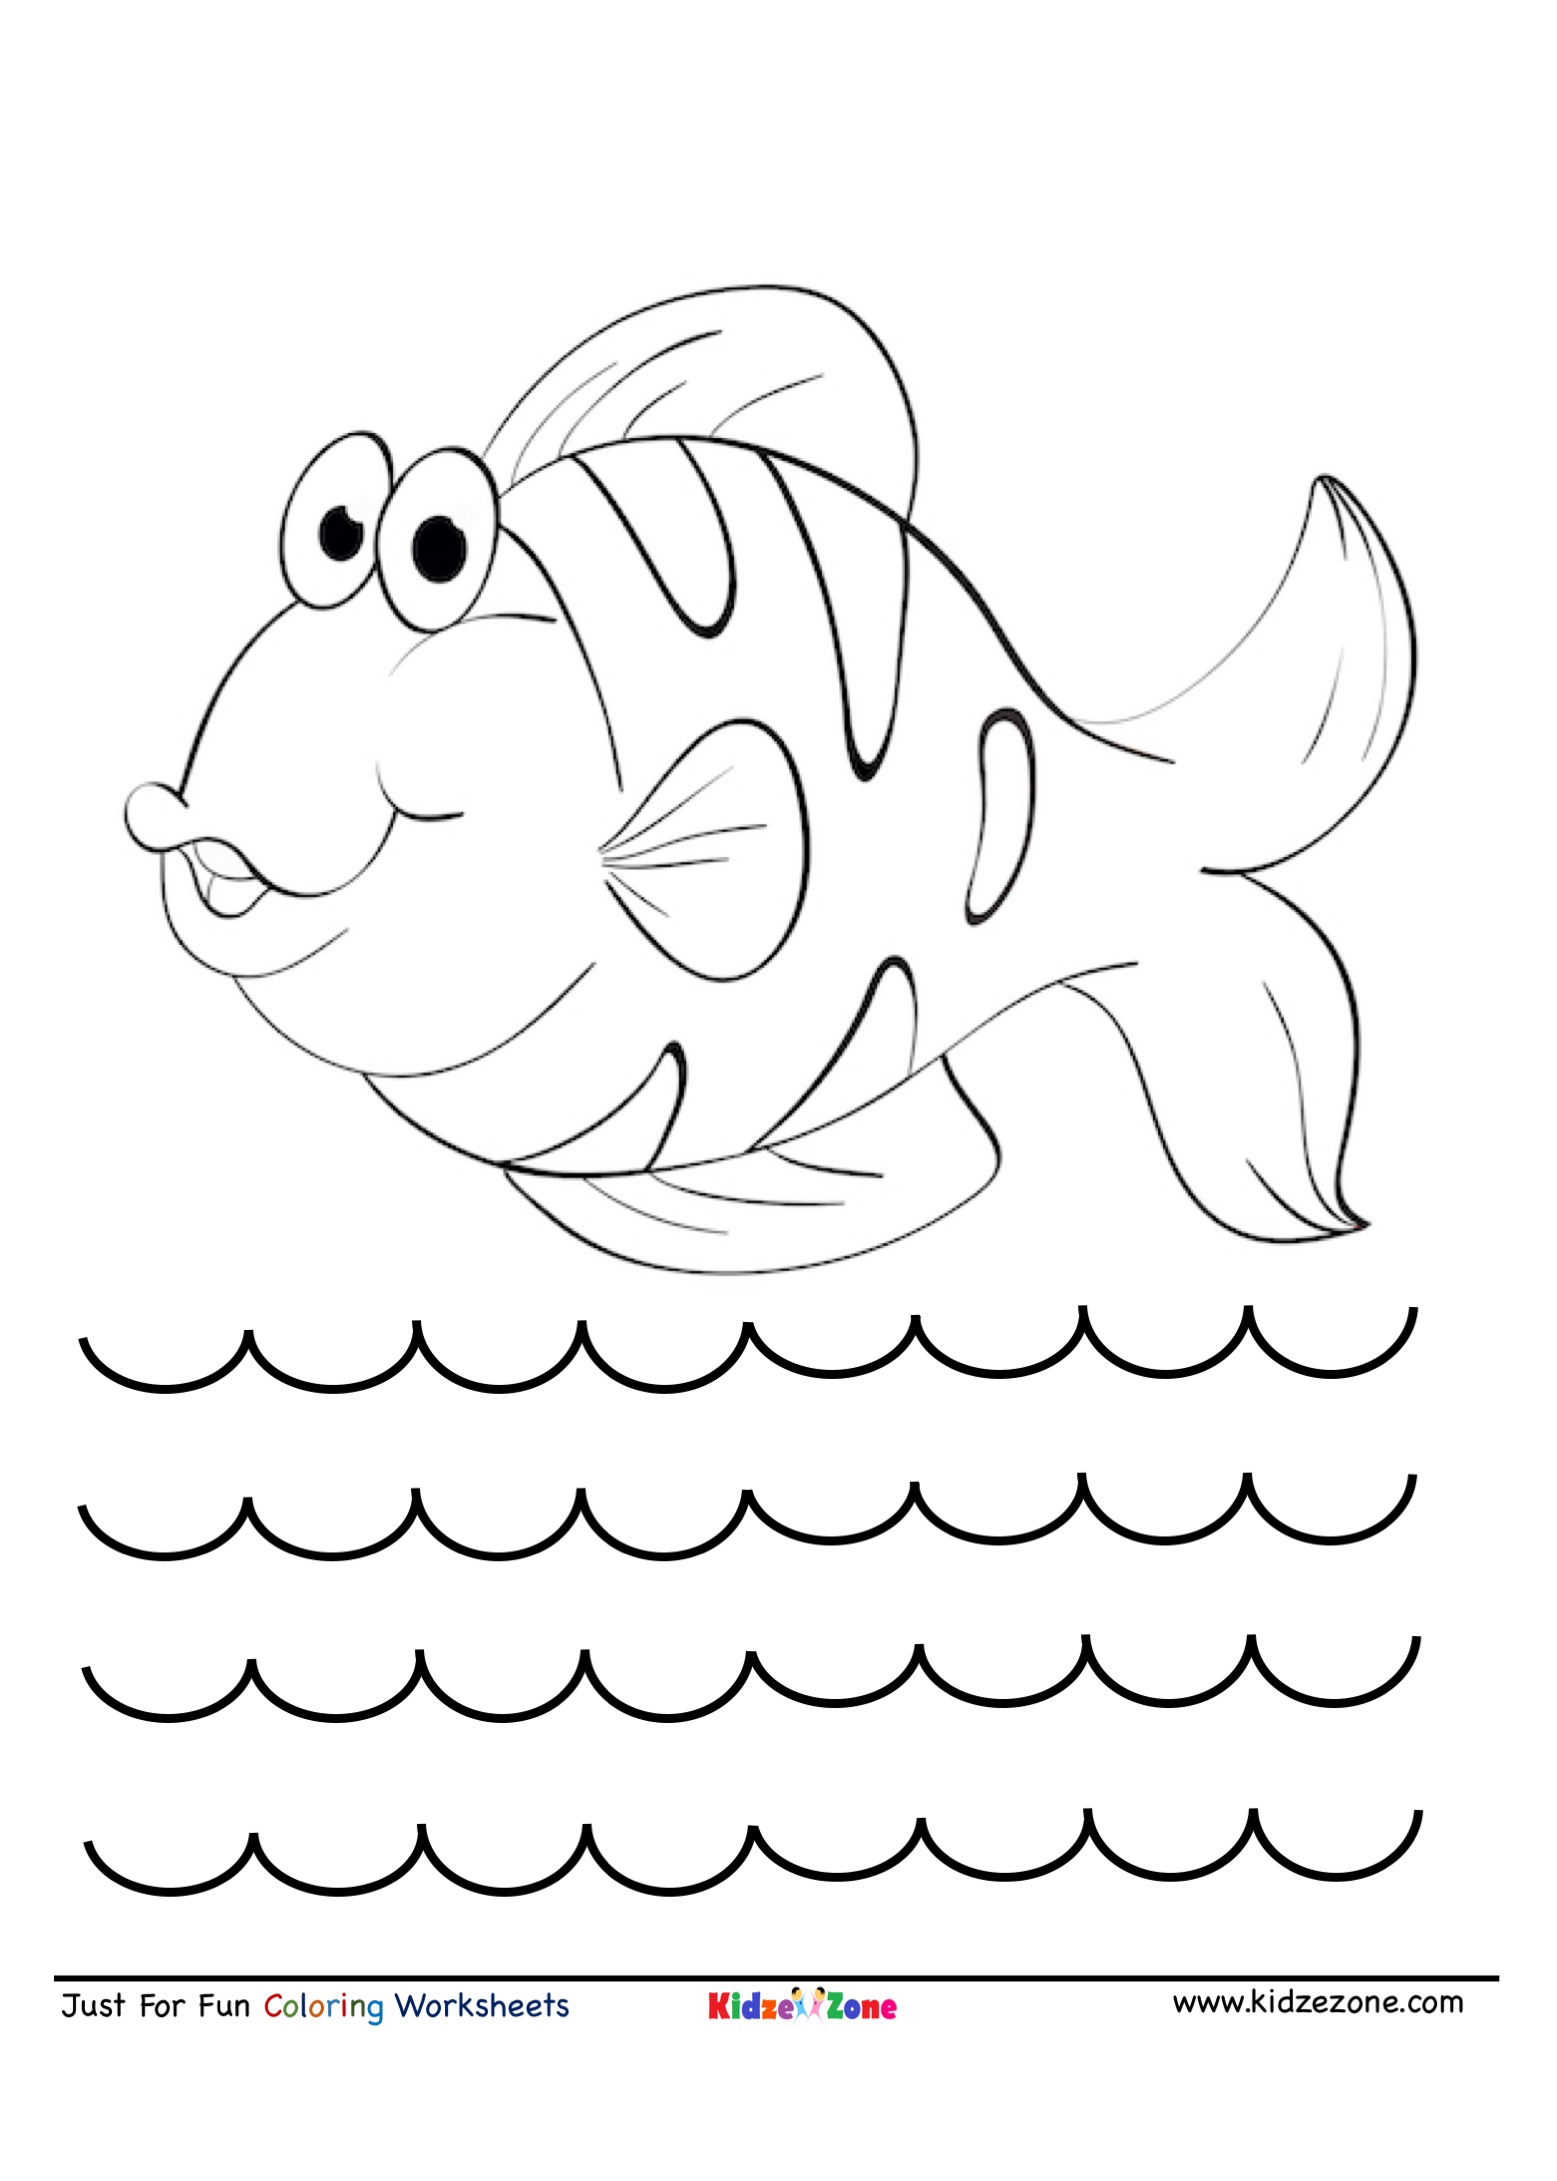 Smiling Fish Cartoon Coloring Page